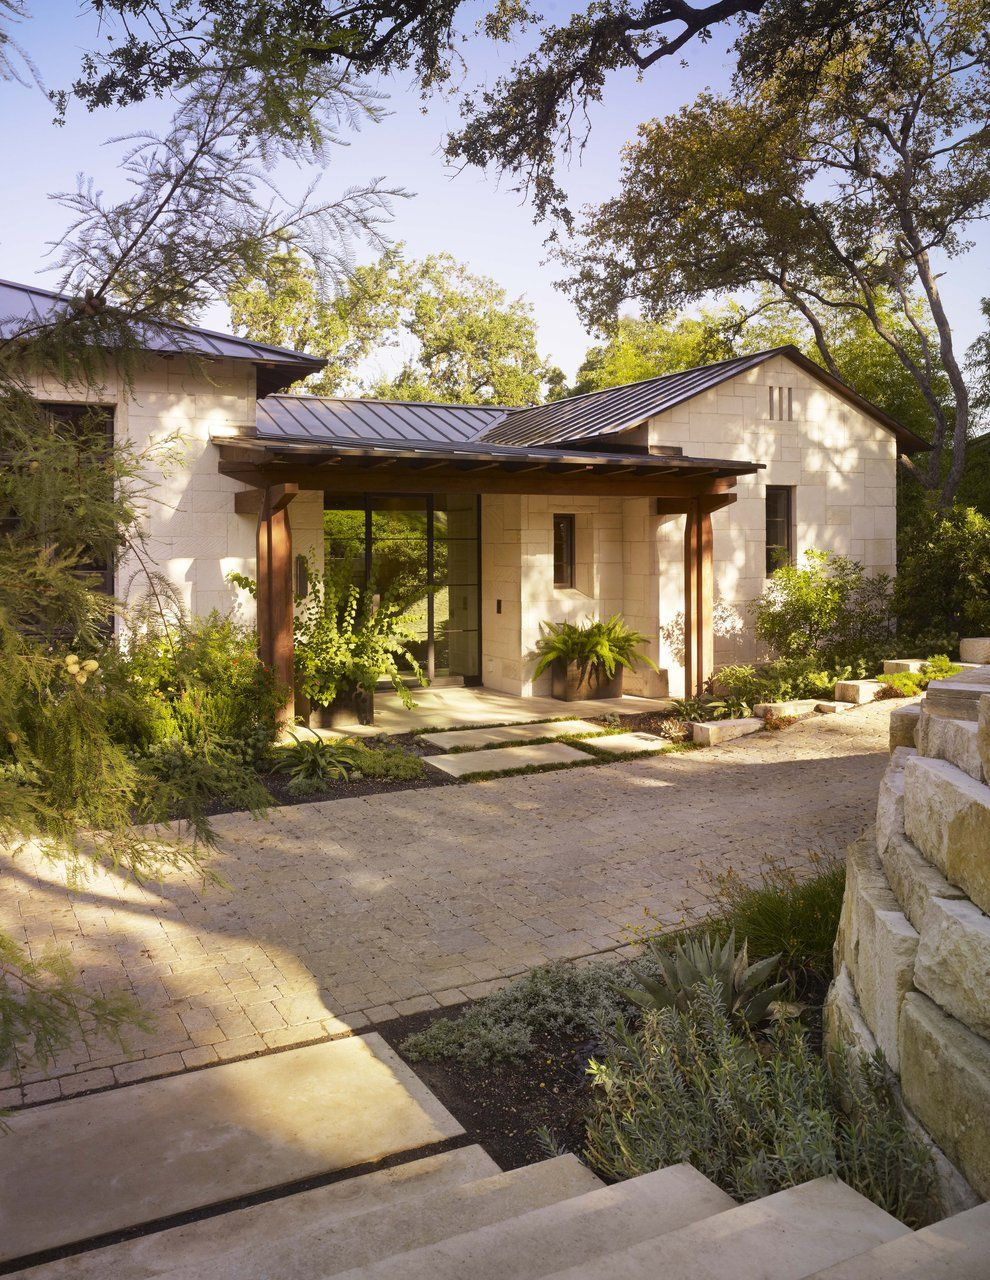 How To Create Modern House Exterior And Interior Design In Spanish Style: Scenic Project . Ryan Street & Associates, Architects . Madrone Landscape Architecture